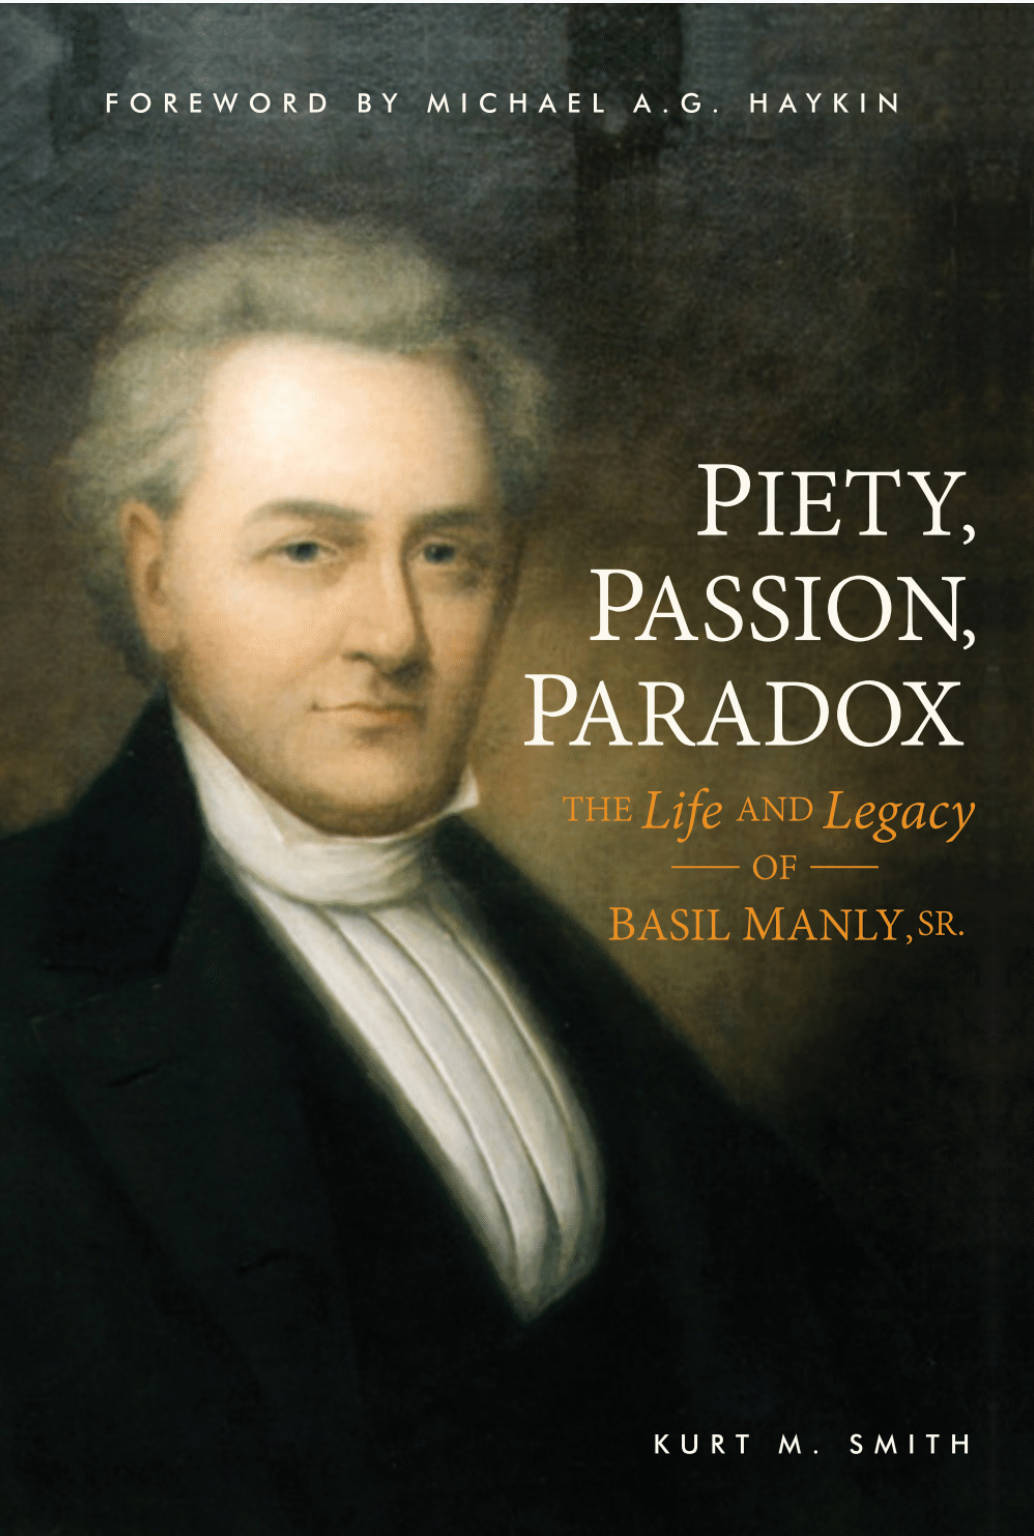 Piety, Passion, Paradox: The Life and Legacy of Basil Manly, SR